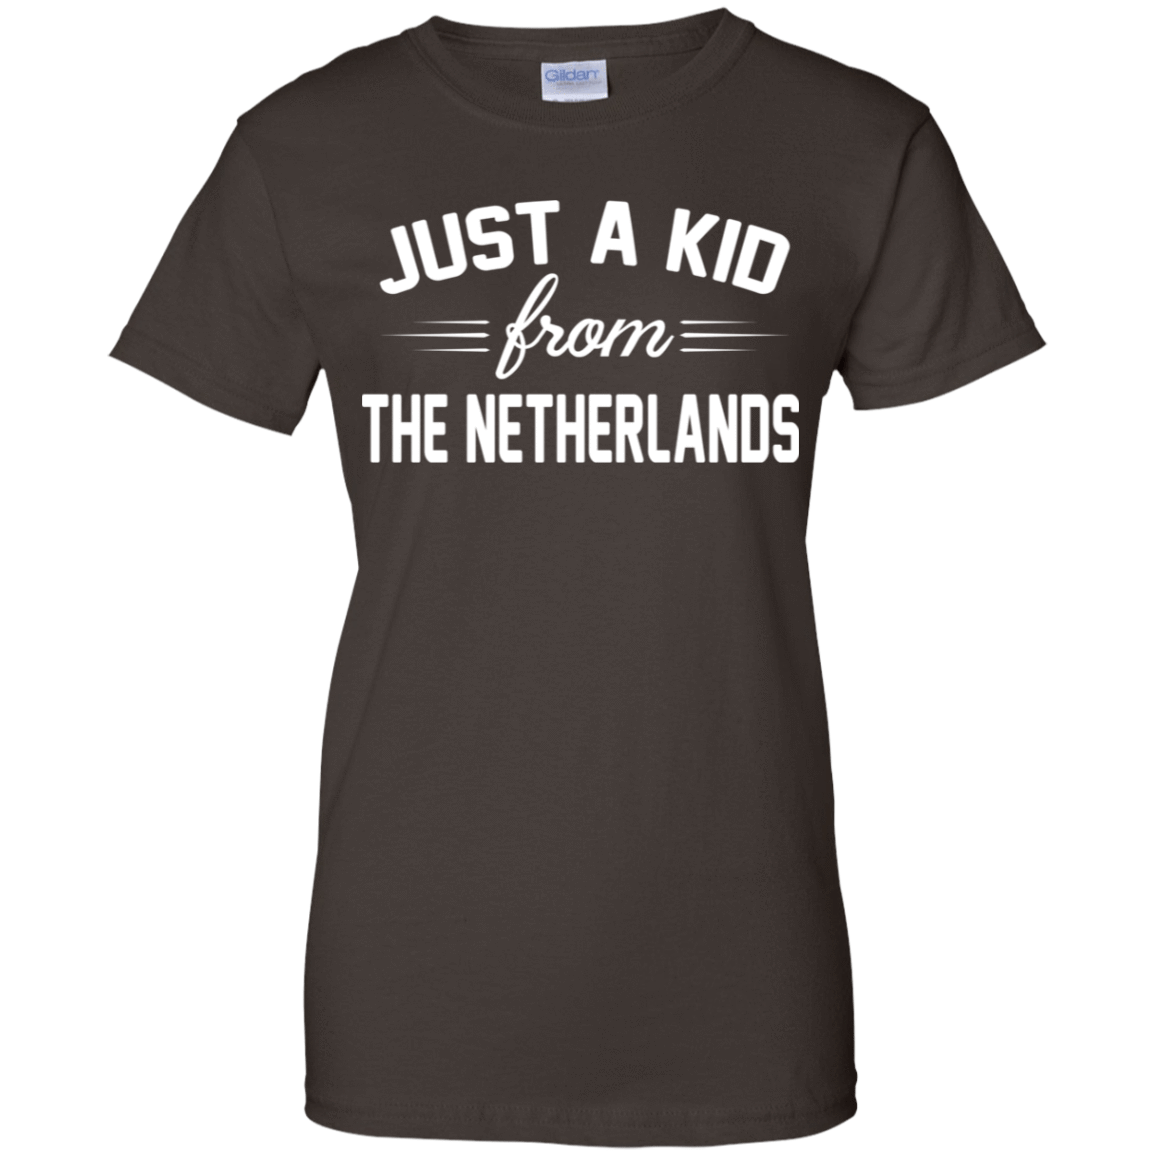 Just a Kid Store | Netherlands T-Shirts, Hoodie, Tank 939-9251-72090842-44702 - Tee Ript